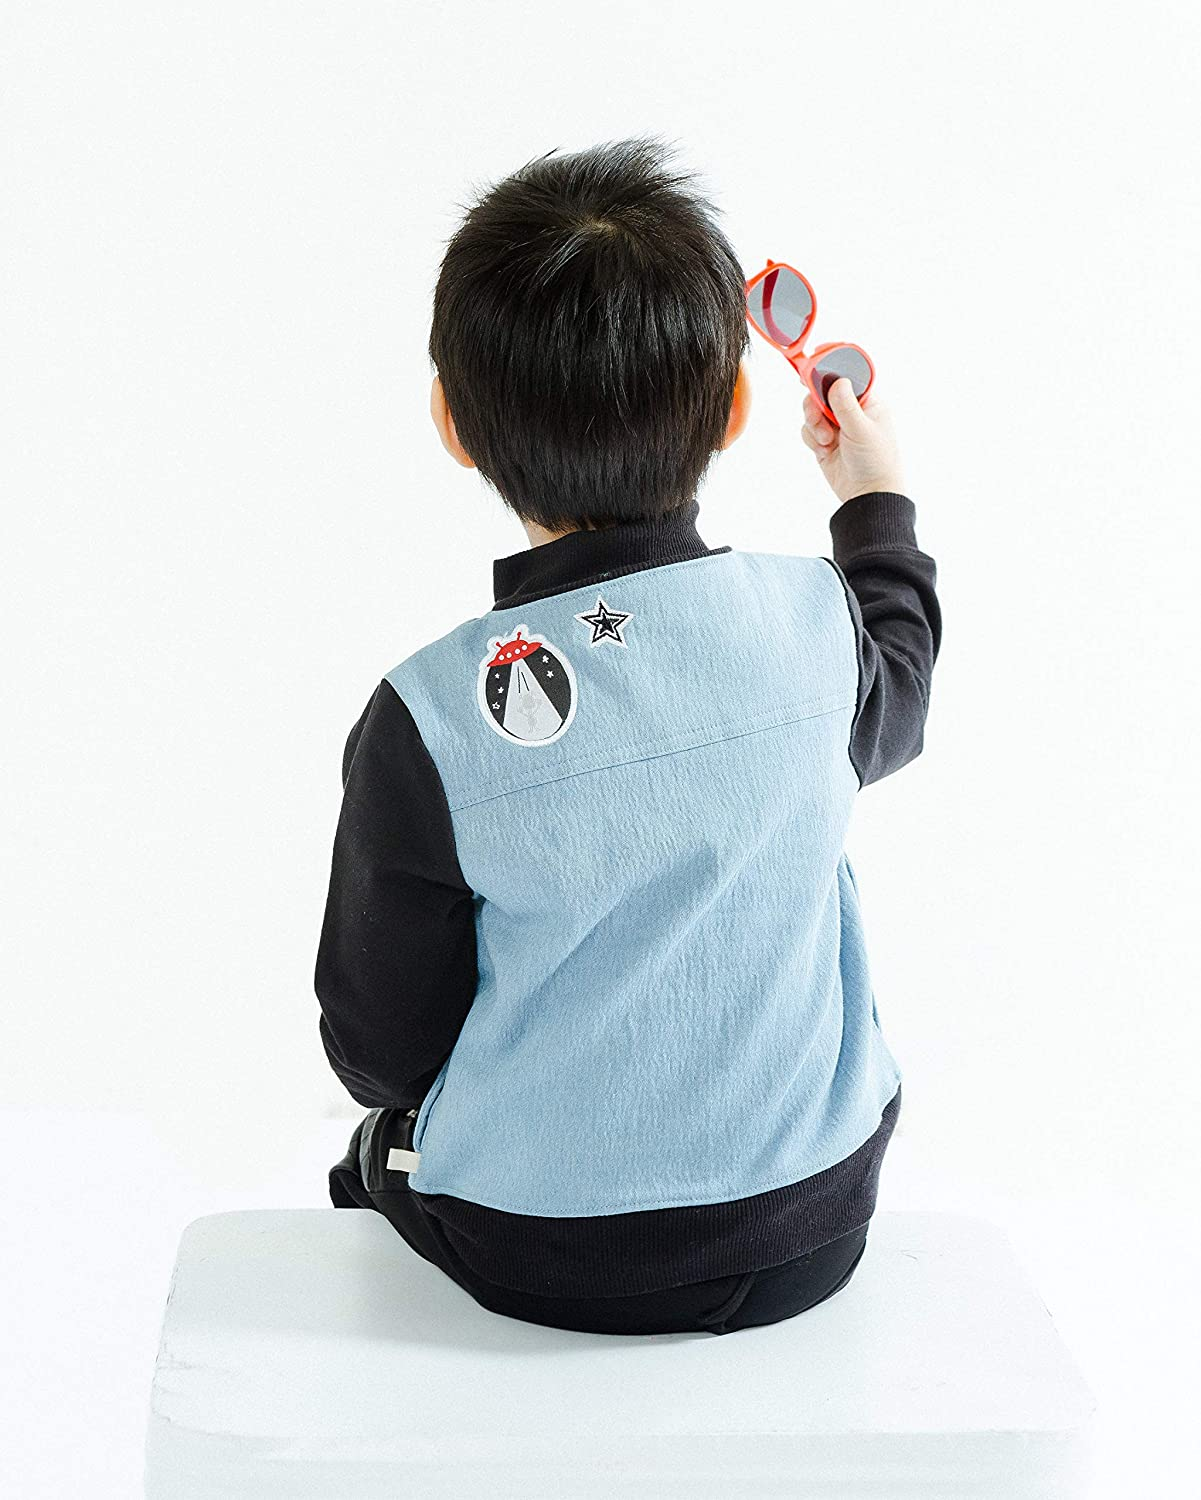 Kinderkind Boys Mixed Media Patchwork Jacket and Pant Set Sizes 2T-3T-4T-5T-6-7